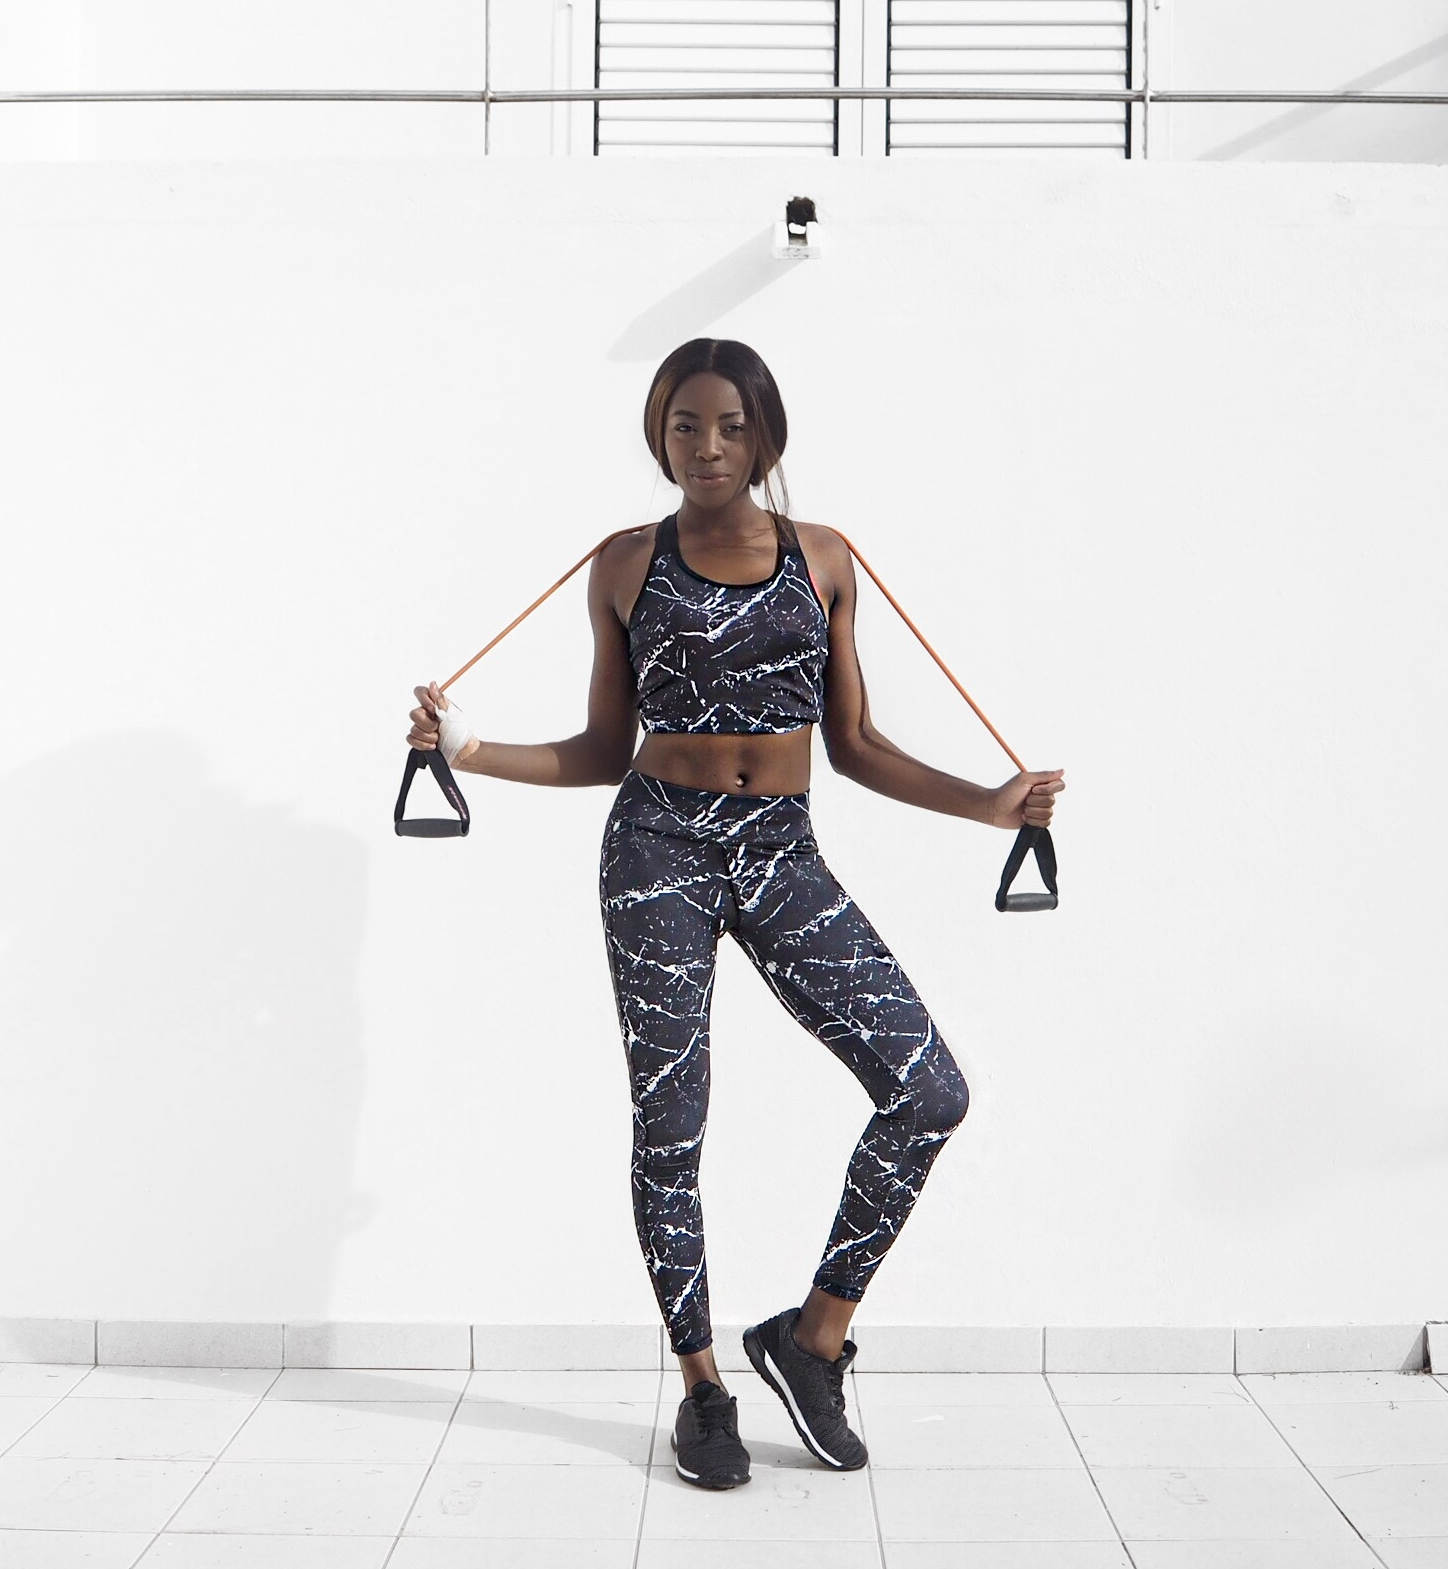 New Look Marble Print Leggings and Top